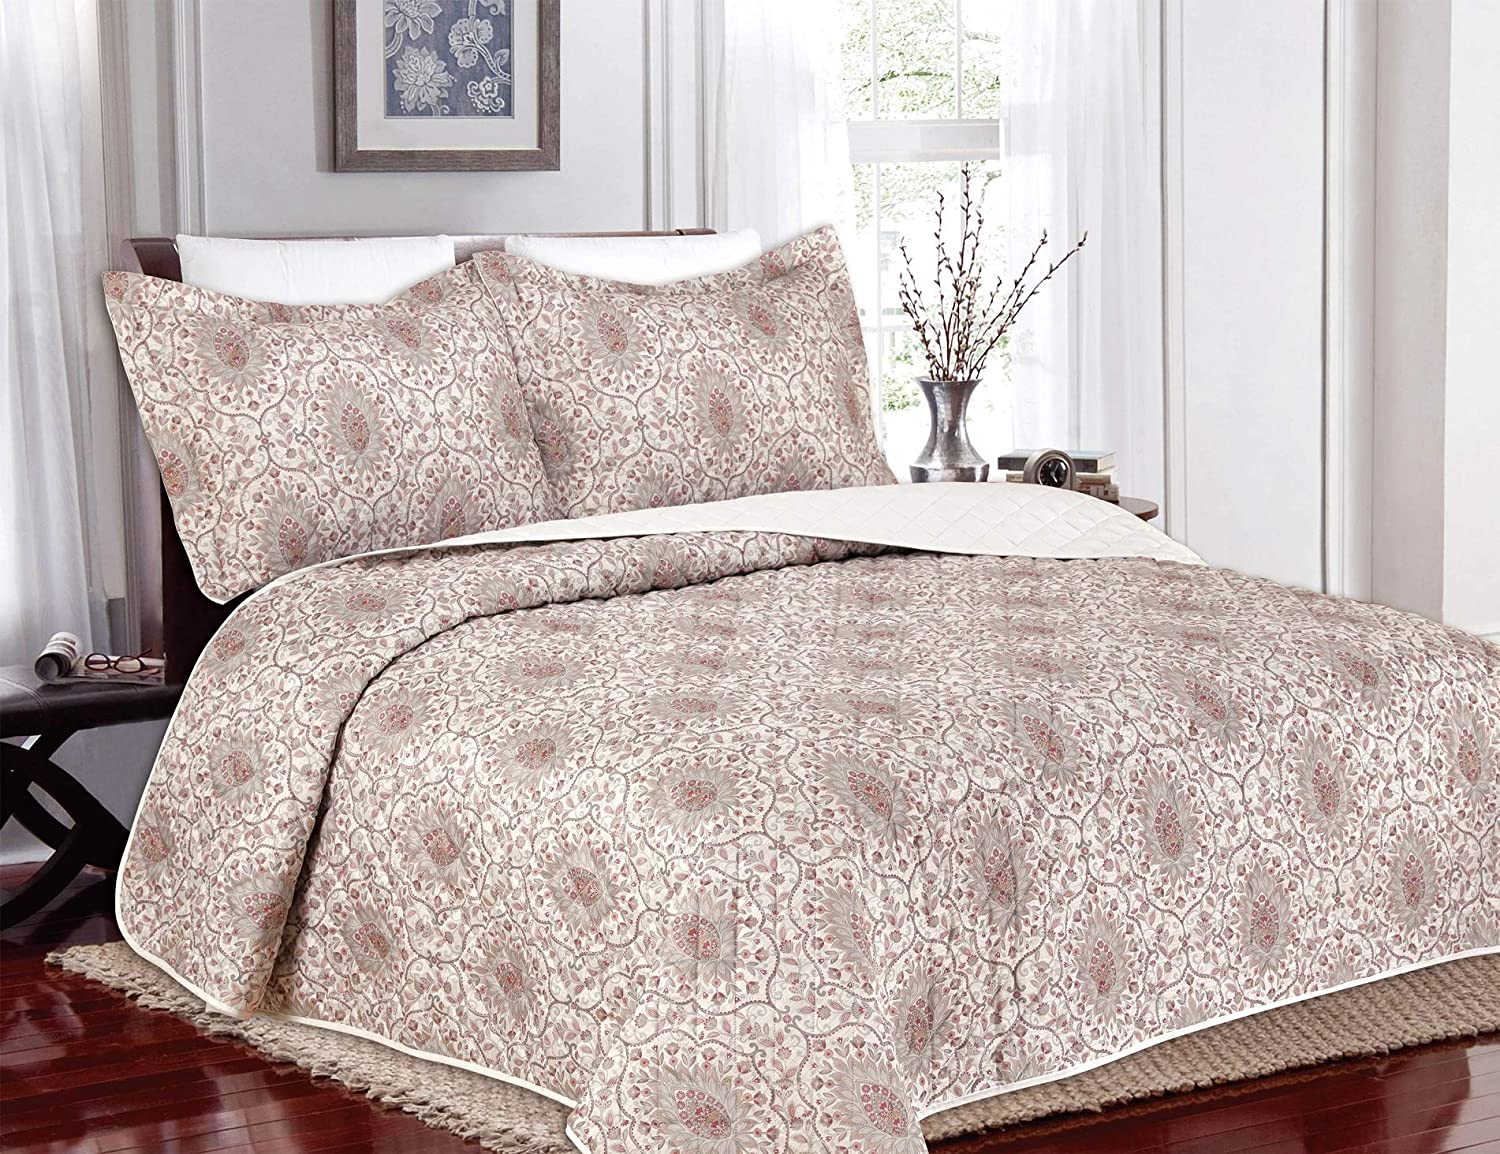 Regal Home Collections 3 Piece Set, Damask Pattern Pinsonic Queen Size Quilt Set, One Quilt with Two Pillow Shams